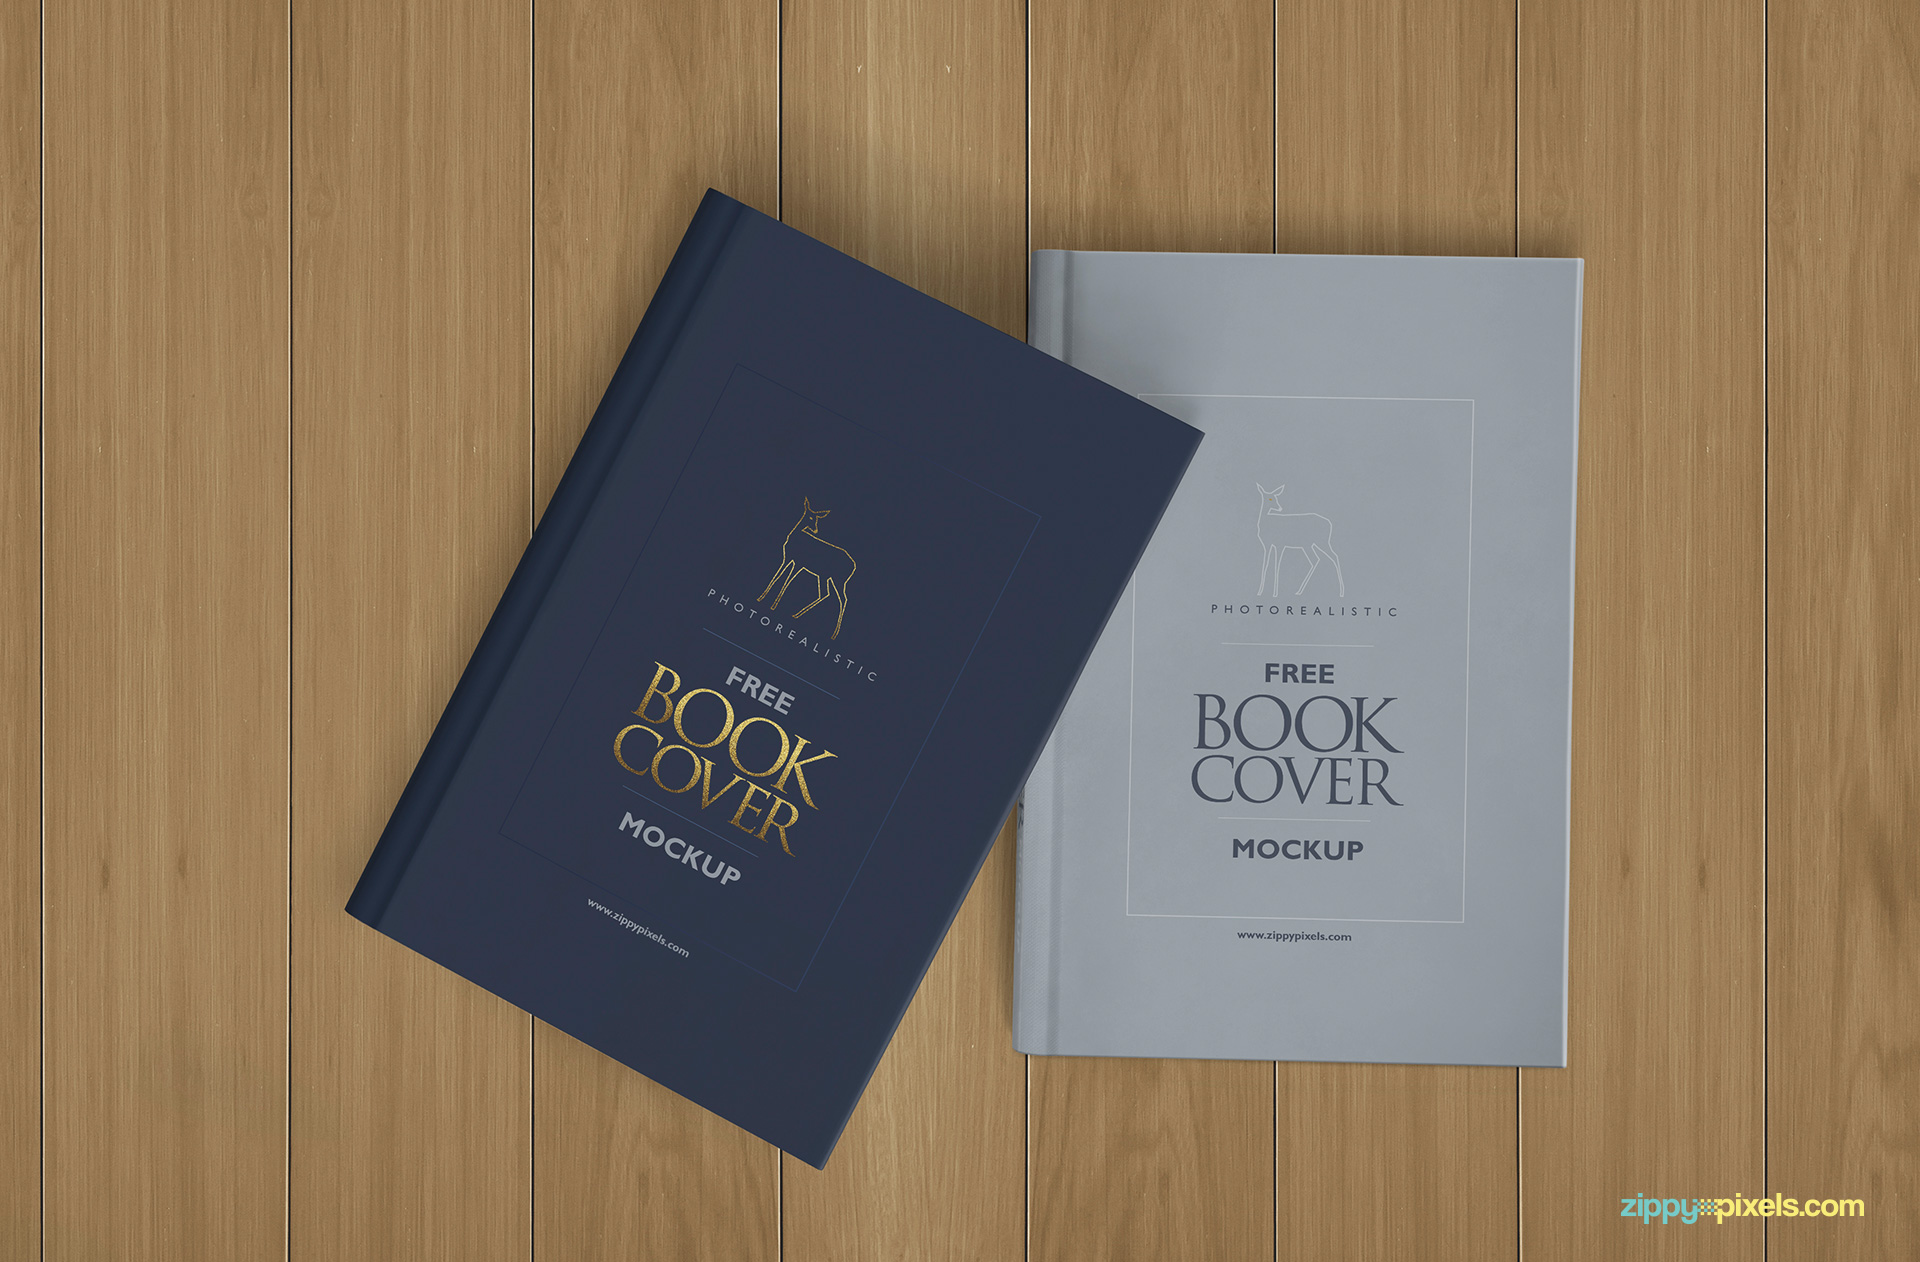 Free hardcover book mockup with wooden background.